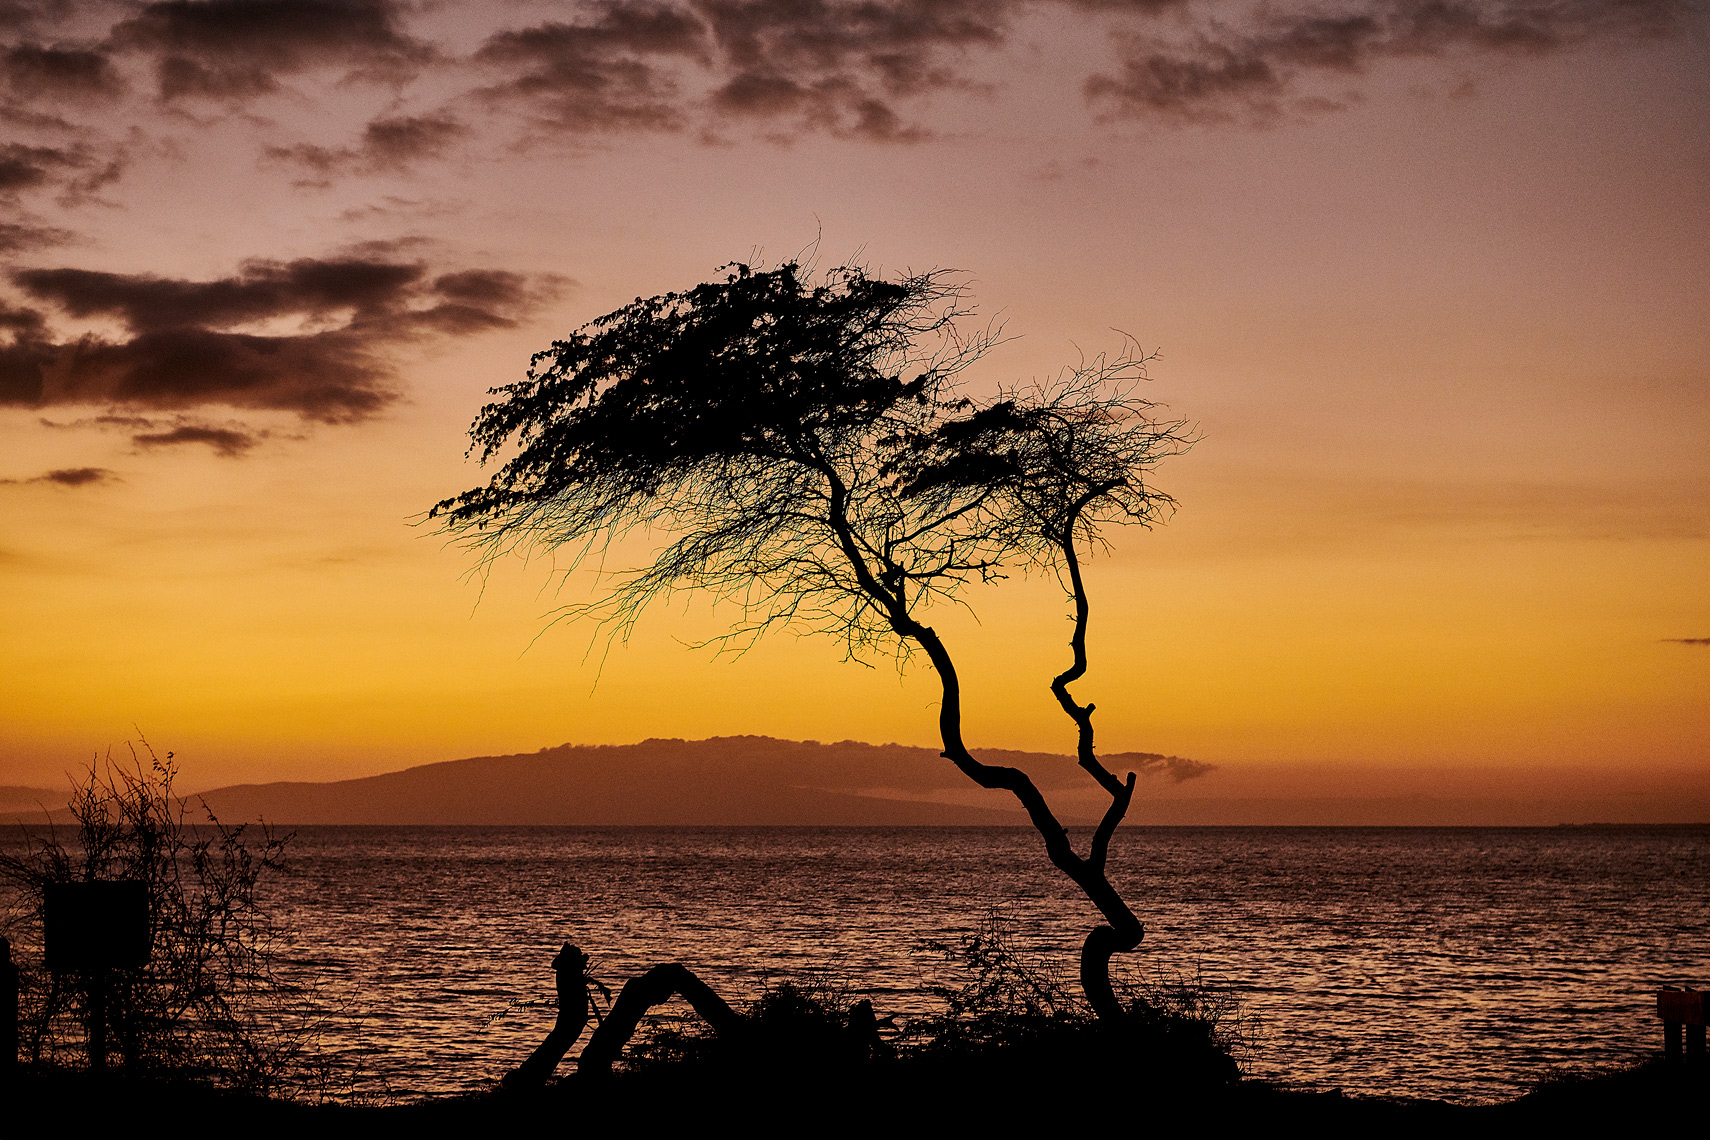 2019-Vancouver-FineArt-Photographer-ErichSaide-Hawaii-Maui-Landscape-Tree